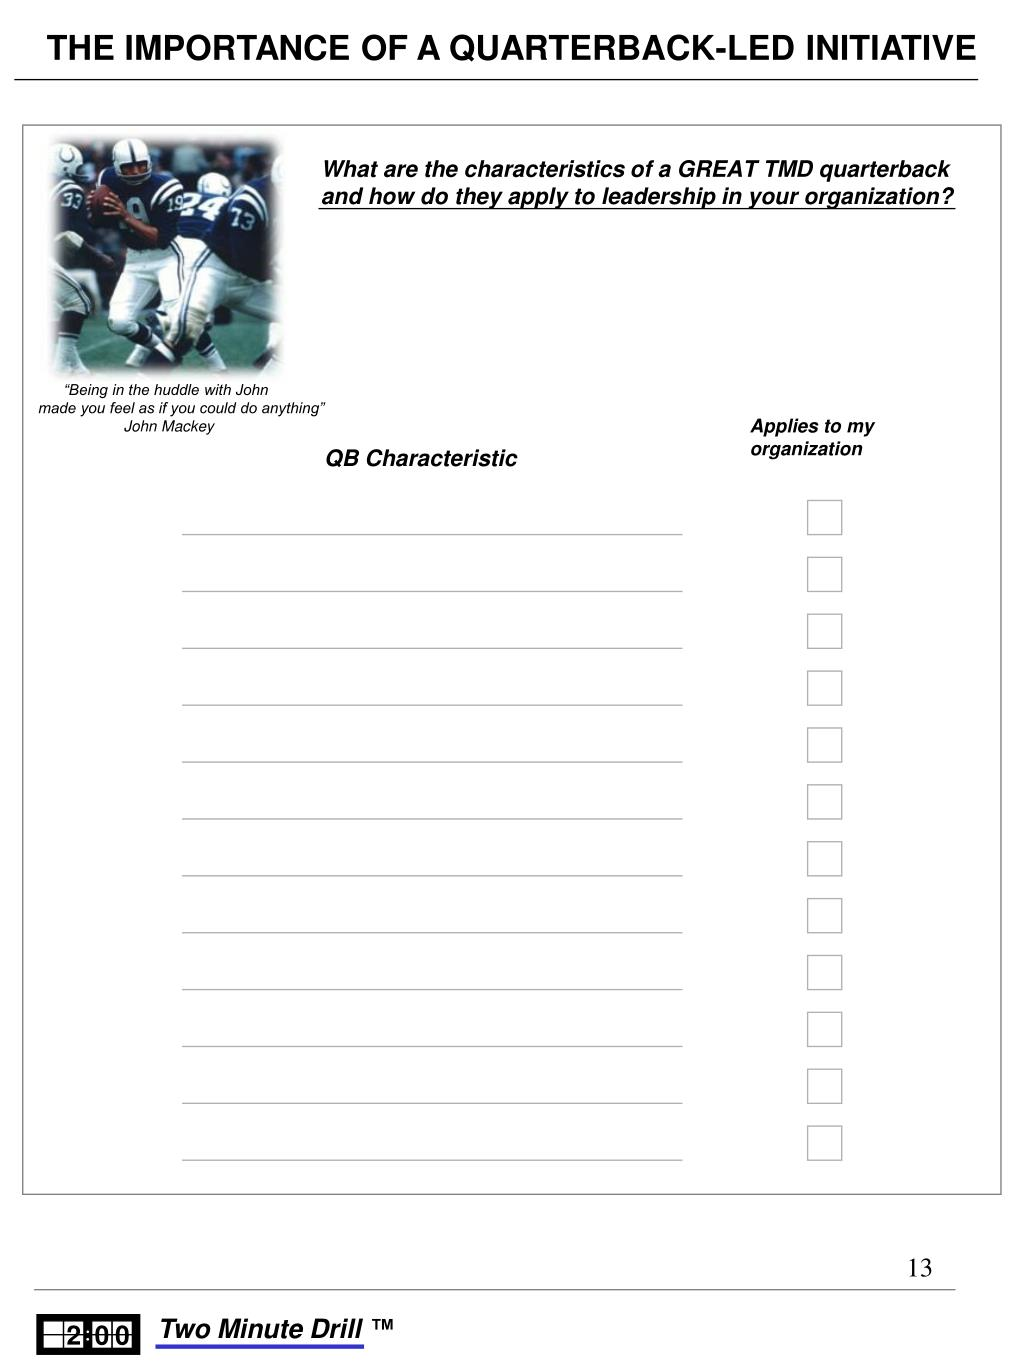 What are the characteristics of a GREAT TMD quarterback